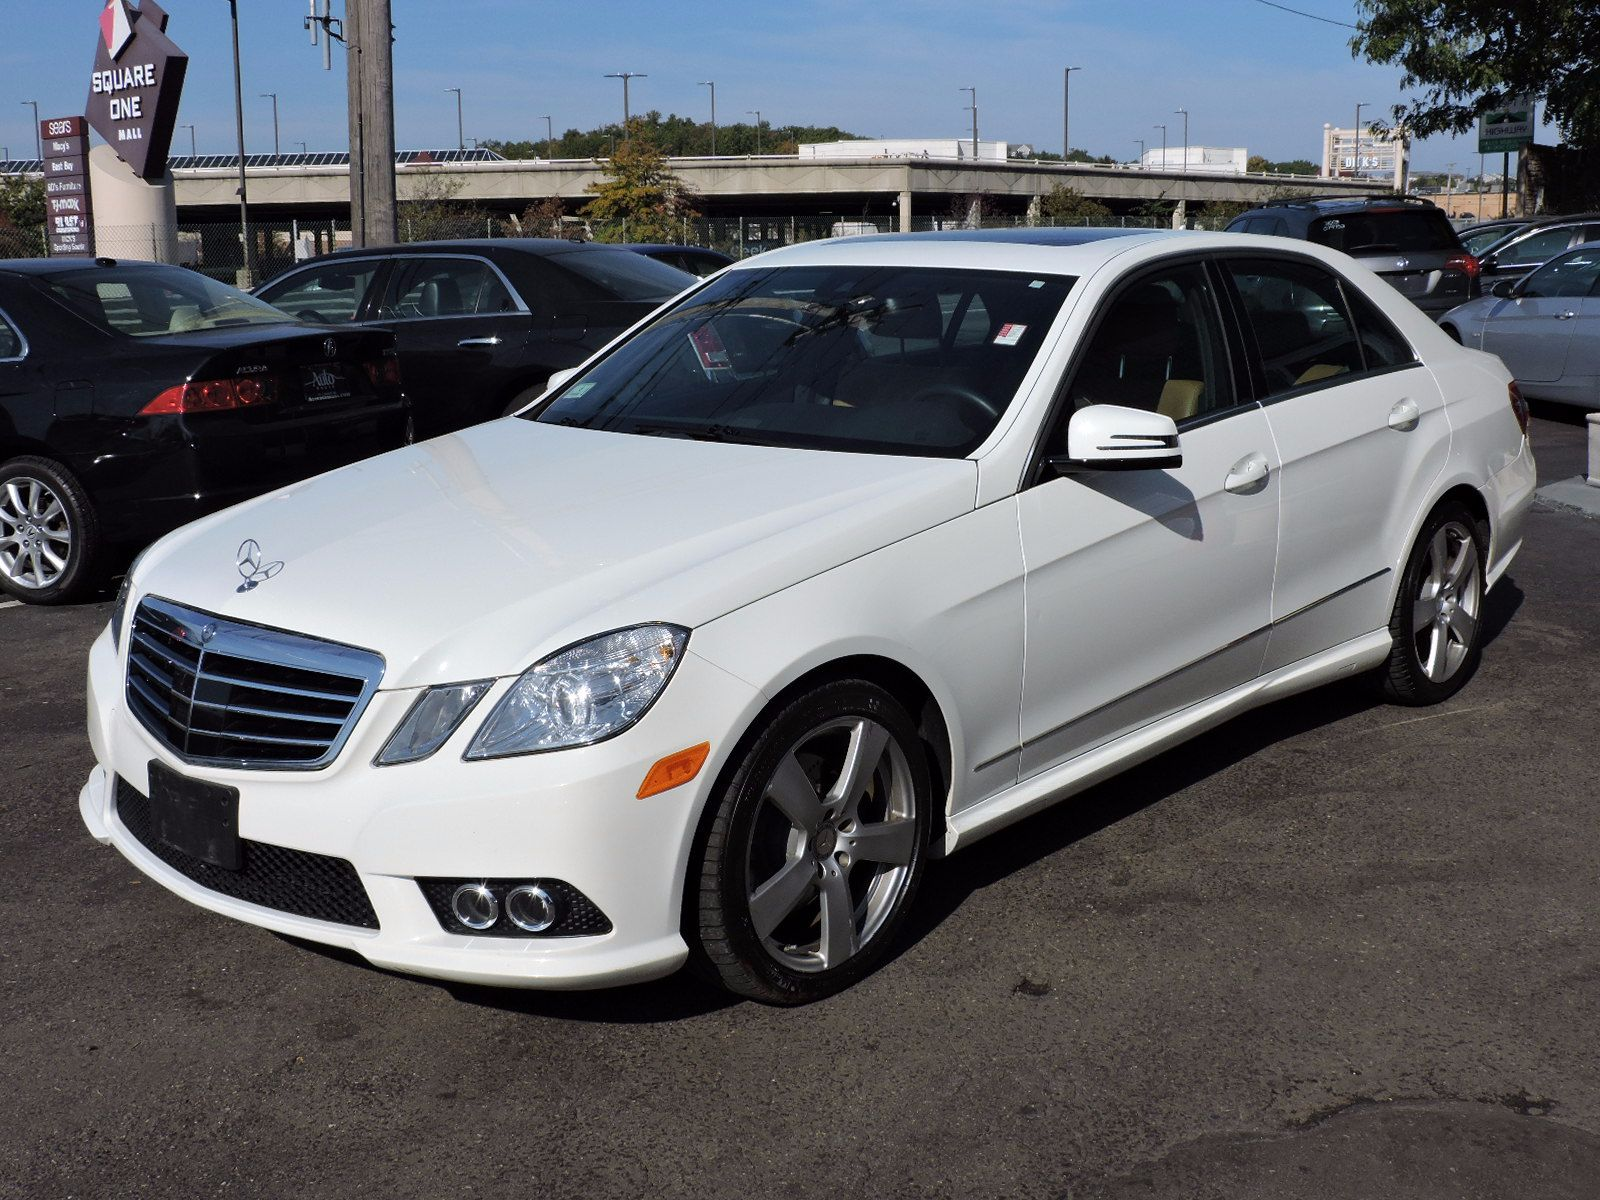 2010 Mercedes-Benz E 350 - Sport - 4Matic - All Wheel Drive - Navigation